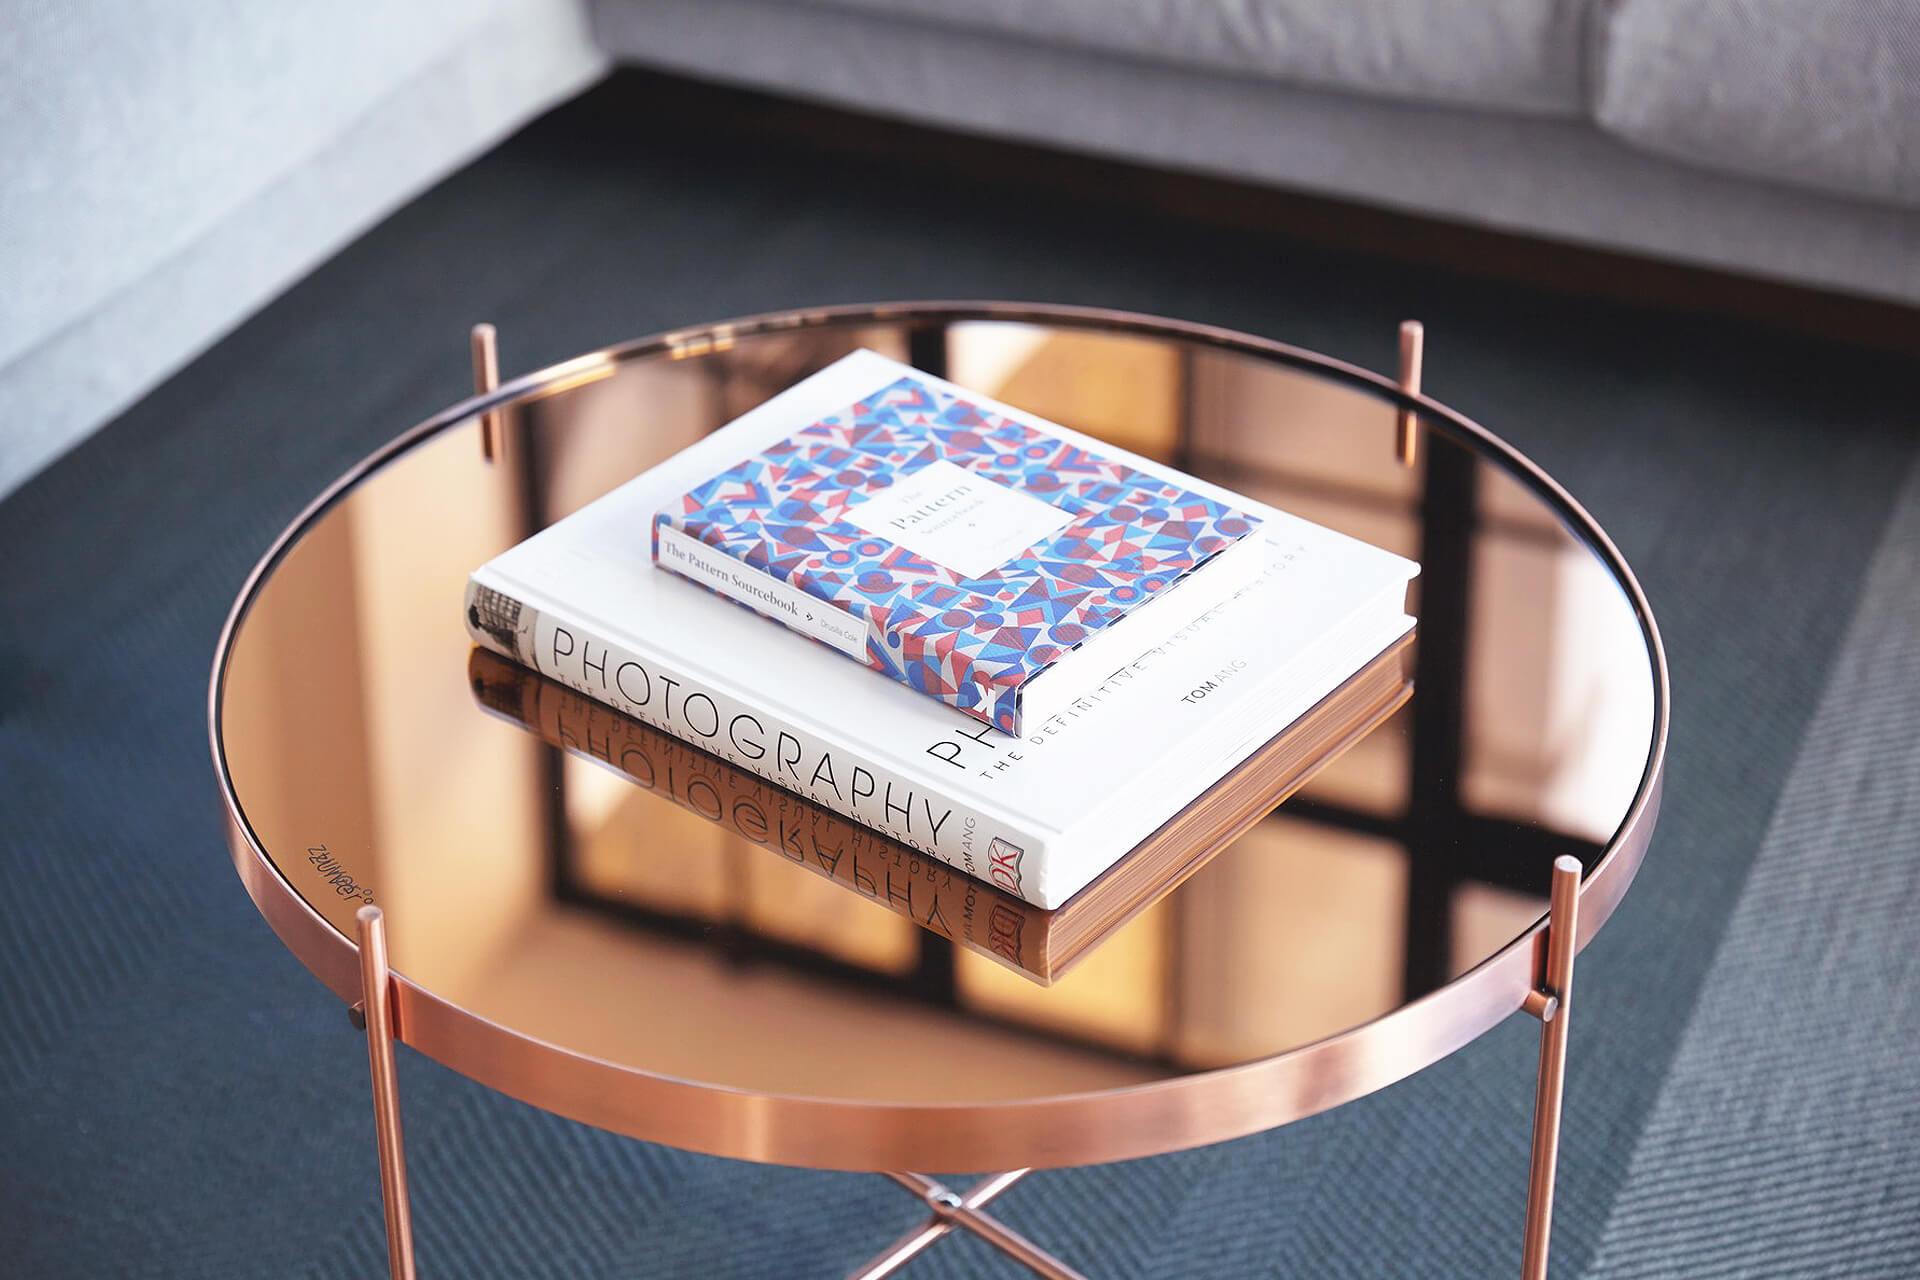 83 Properties Copper coffee table